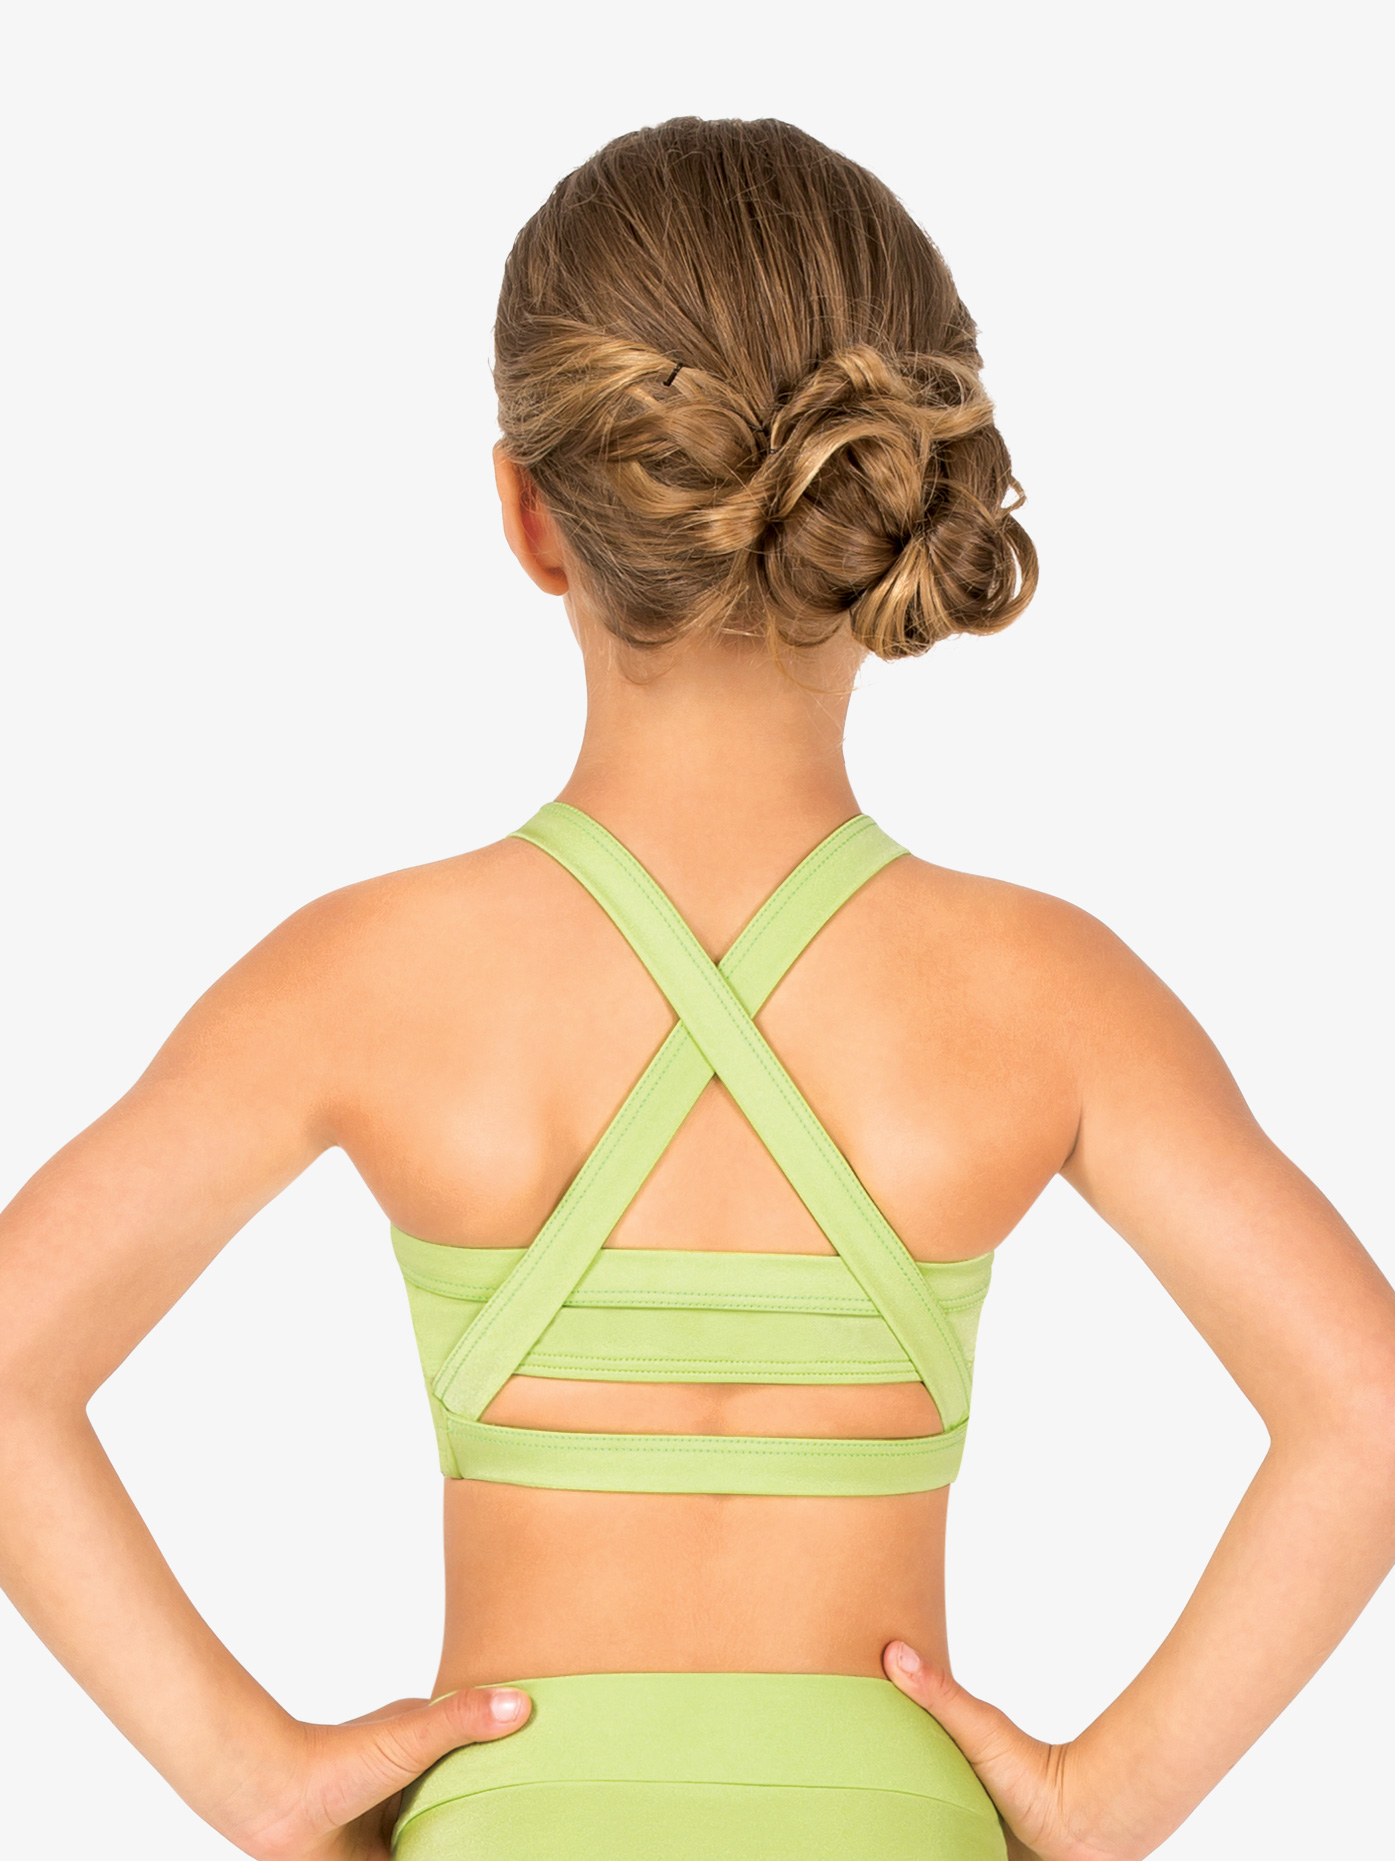 Body Wrappers Child Sweetheart Halter Dance Bra Top NL1009